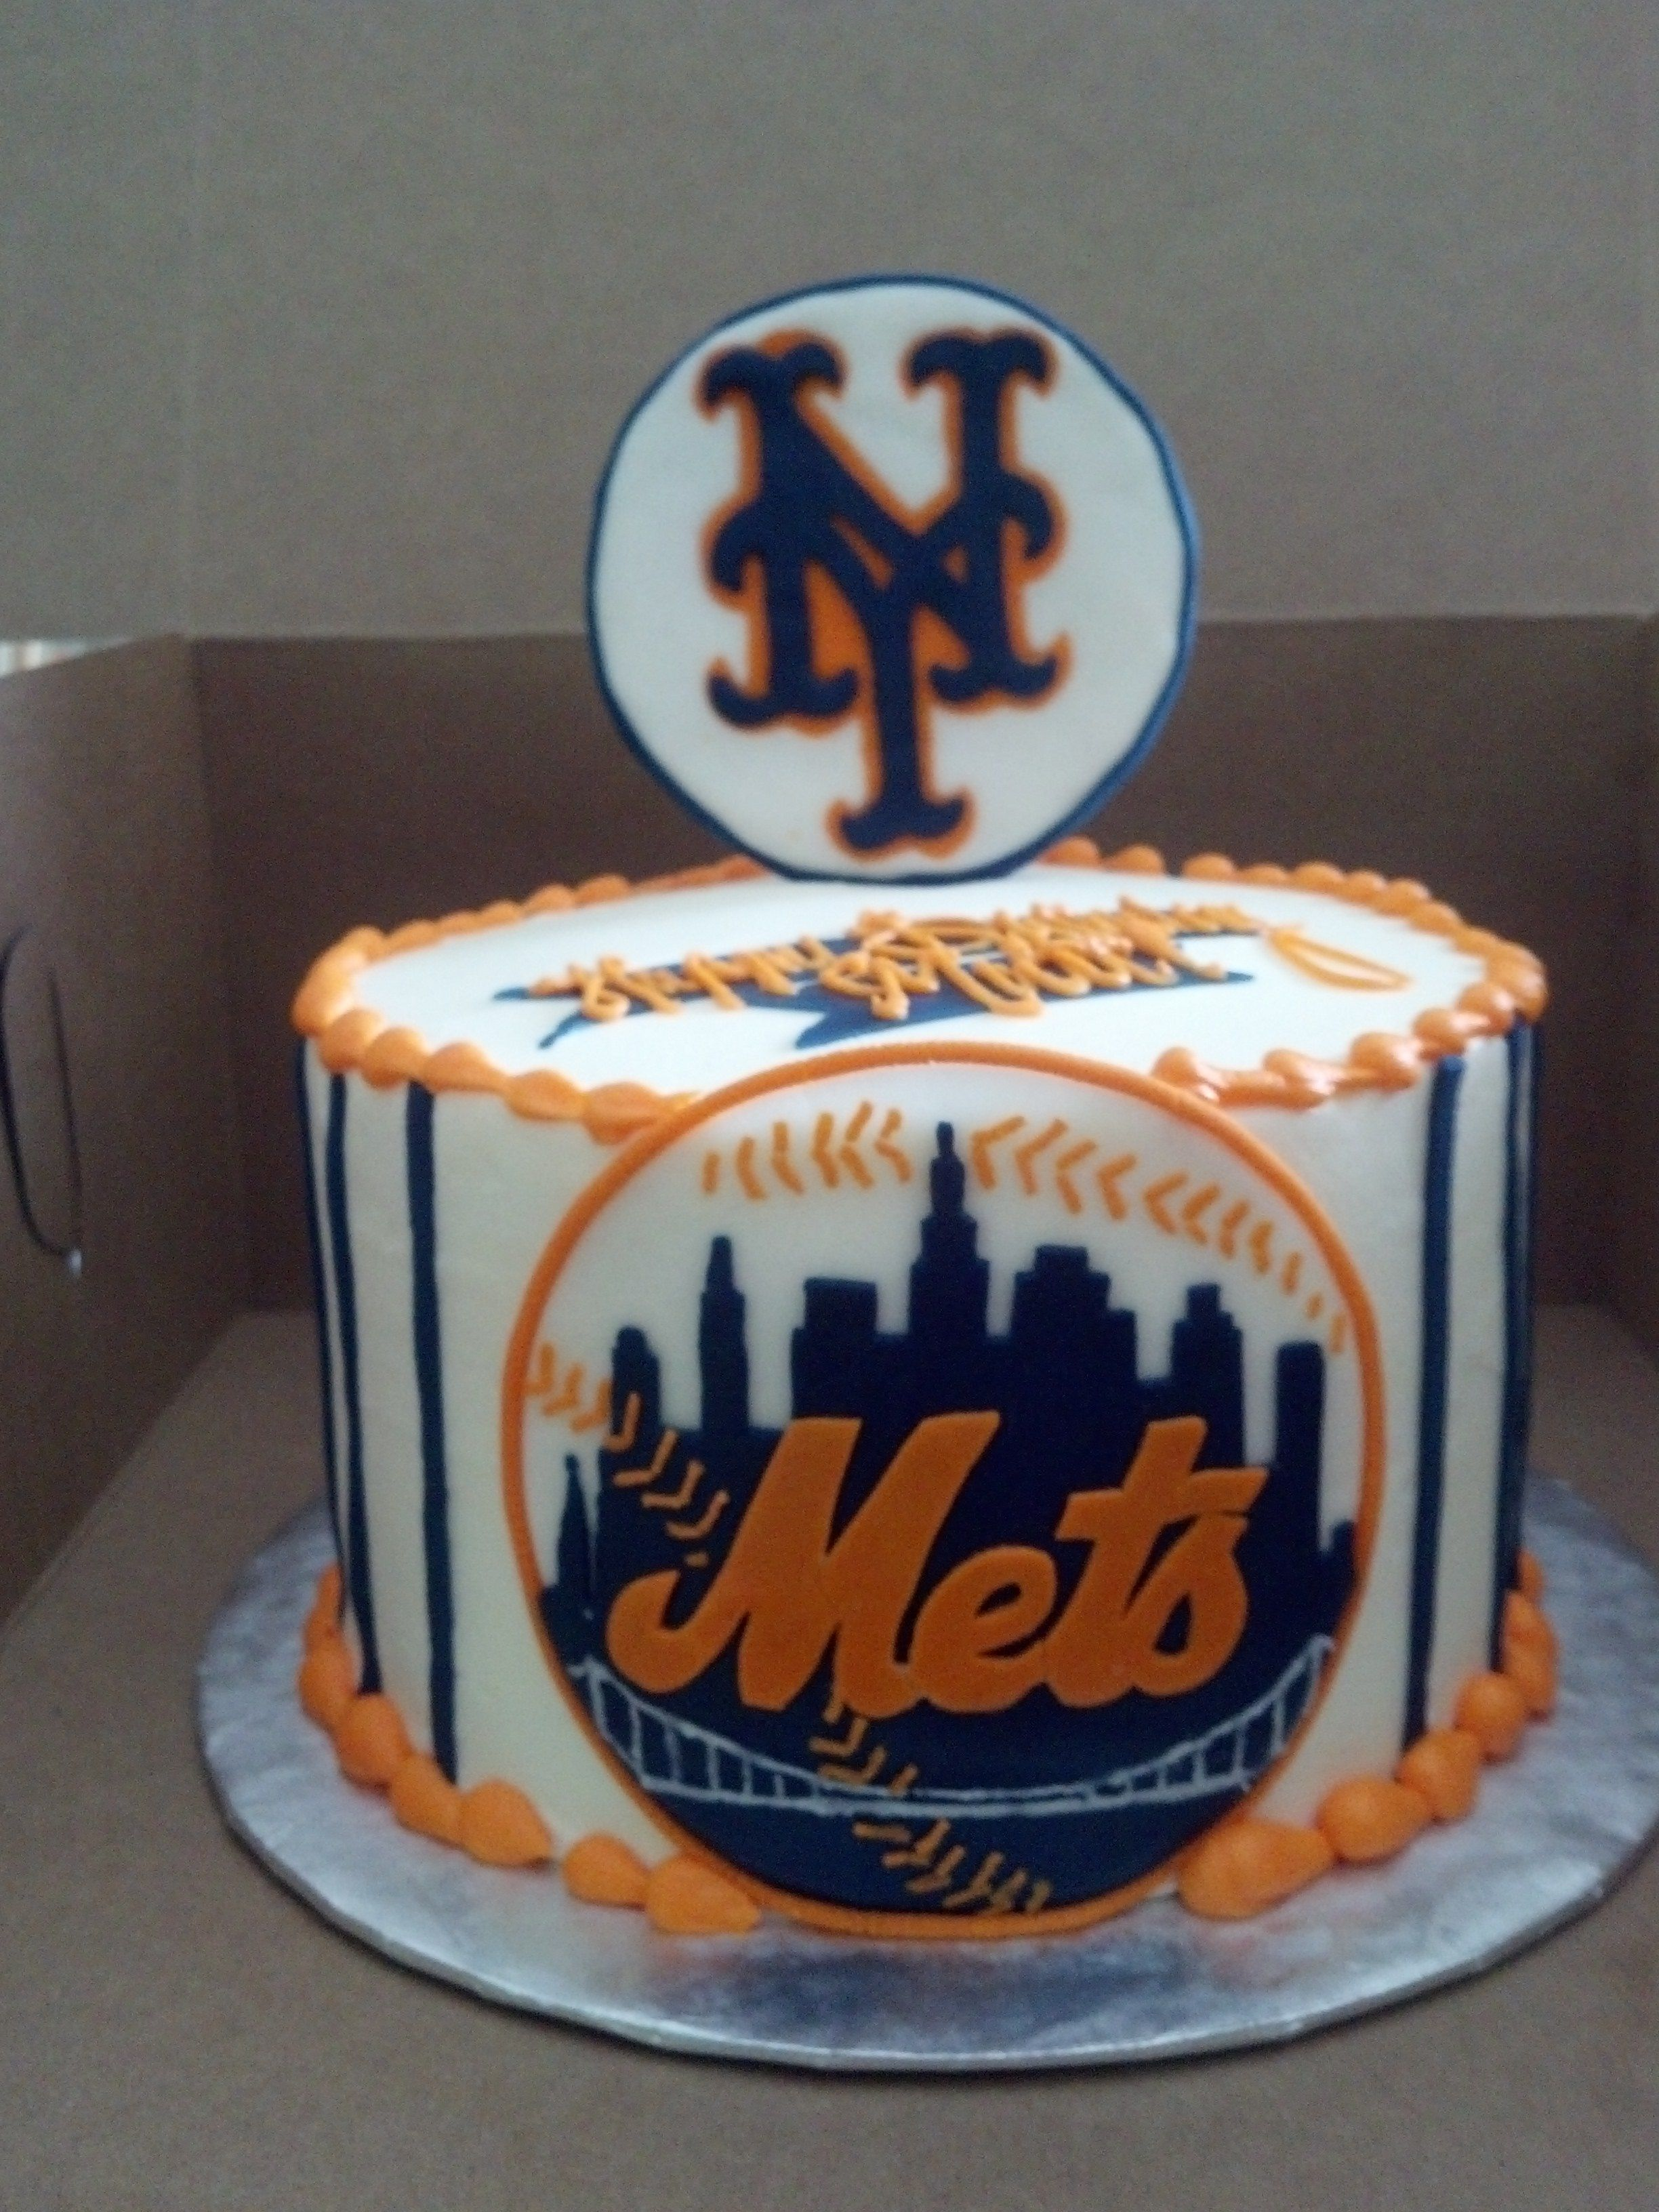 Well Deserved On This October Evening 2015 As The Mets Continued To Rock Baseball World NY METS